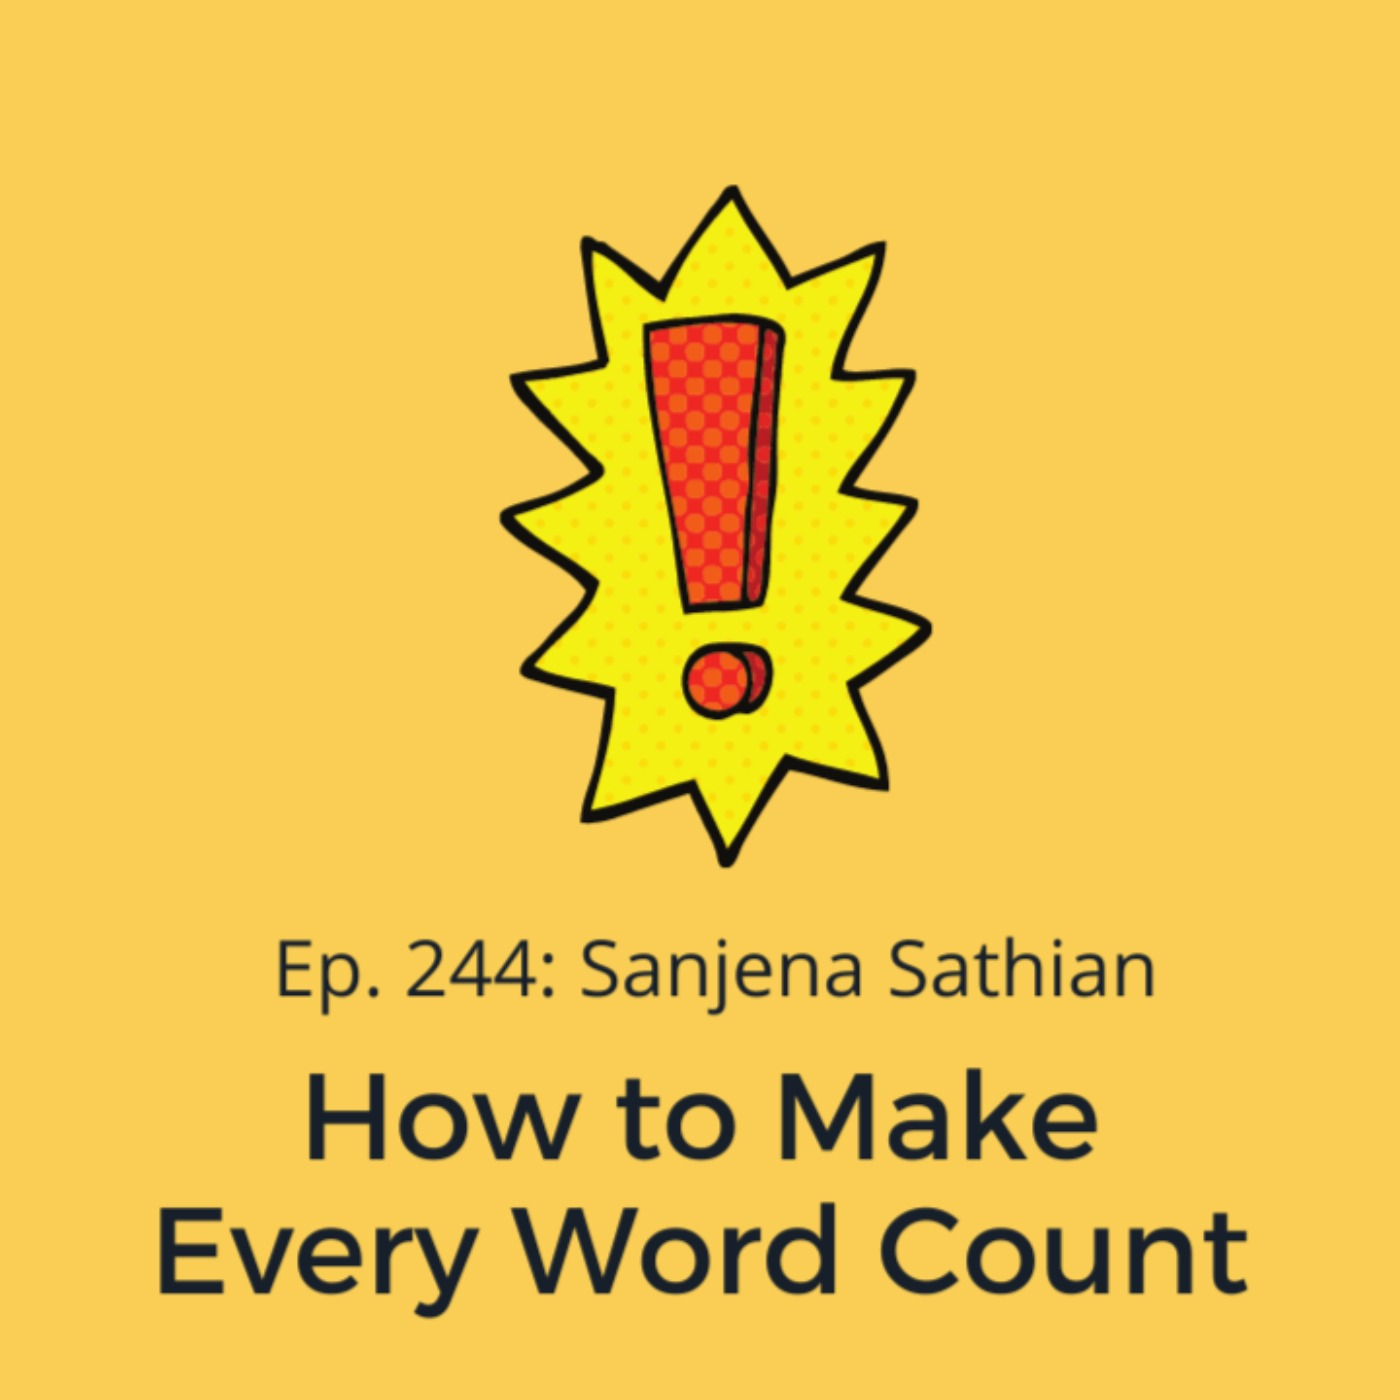 Ep. 244: Sanjena Sathian on How to Make Every Word Count